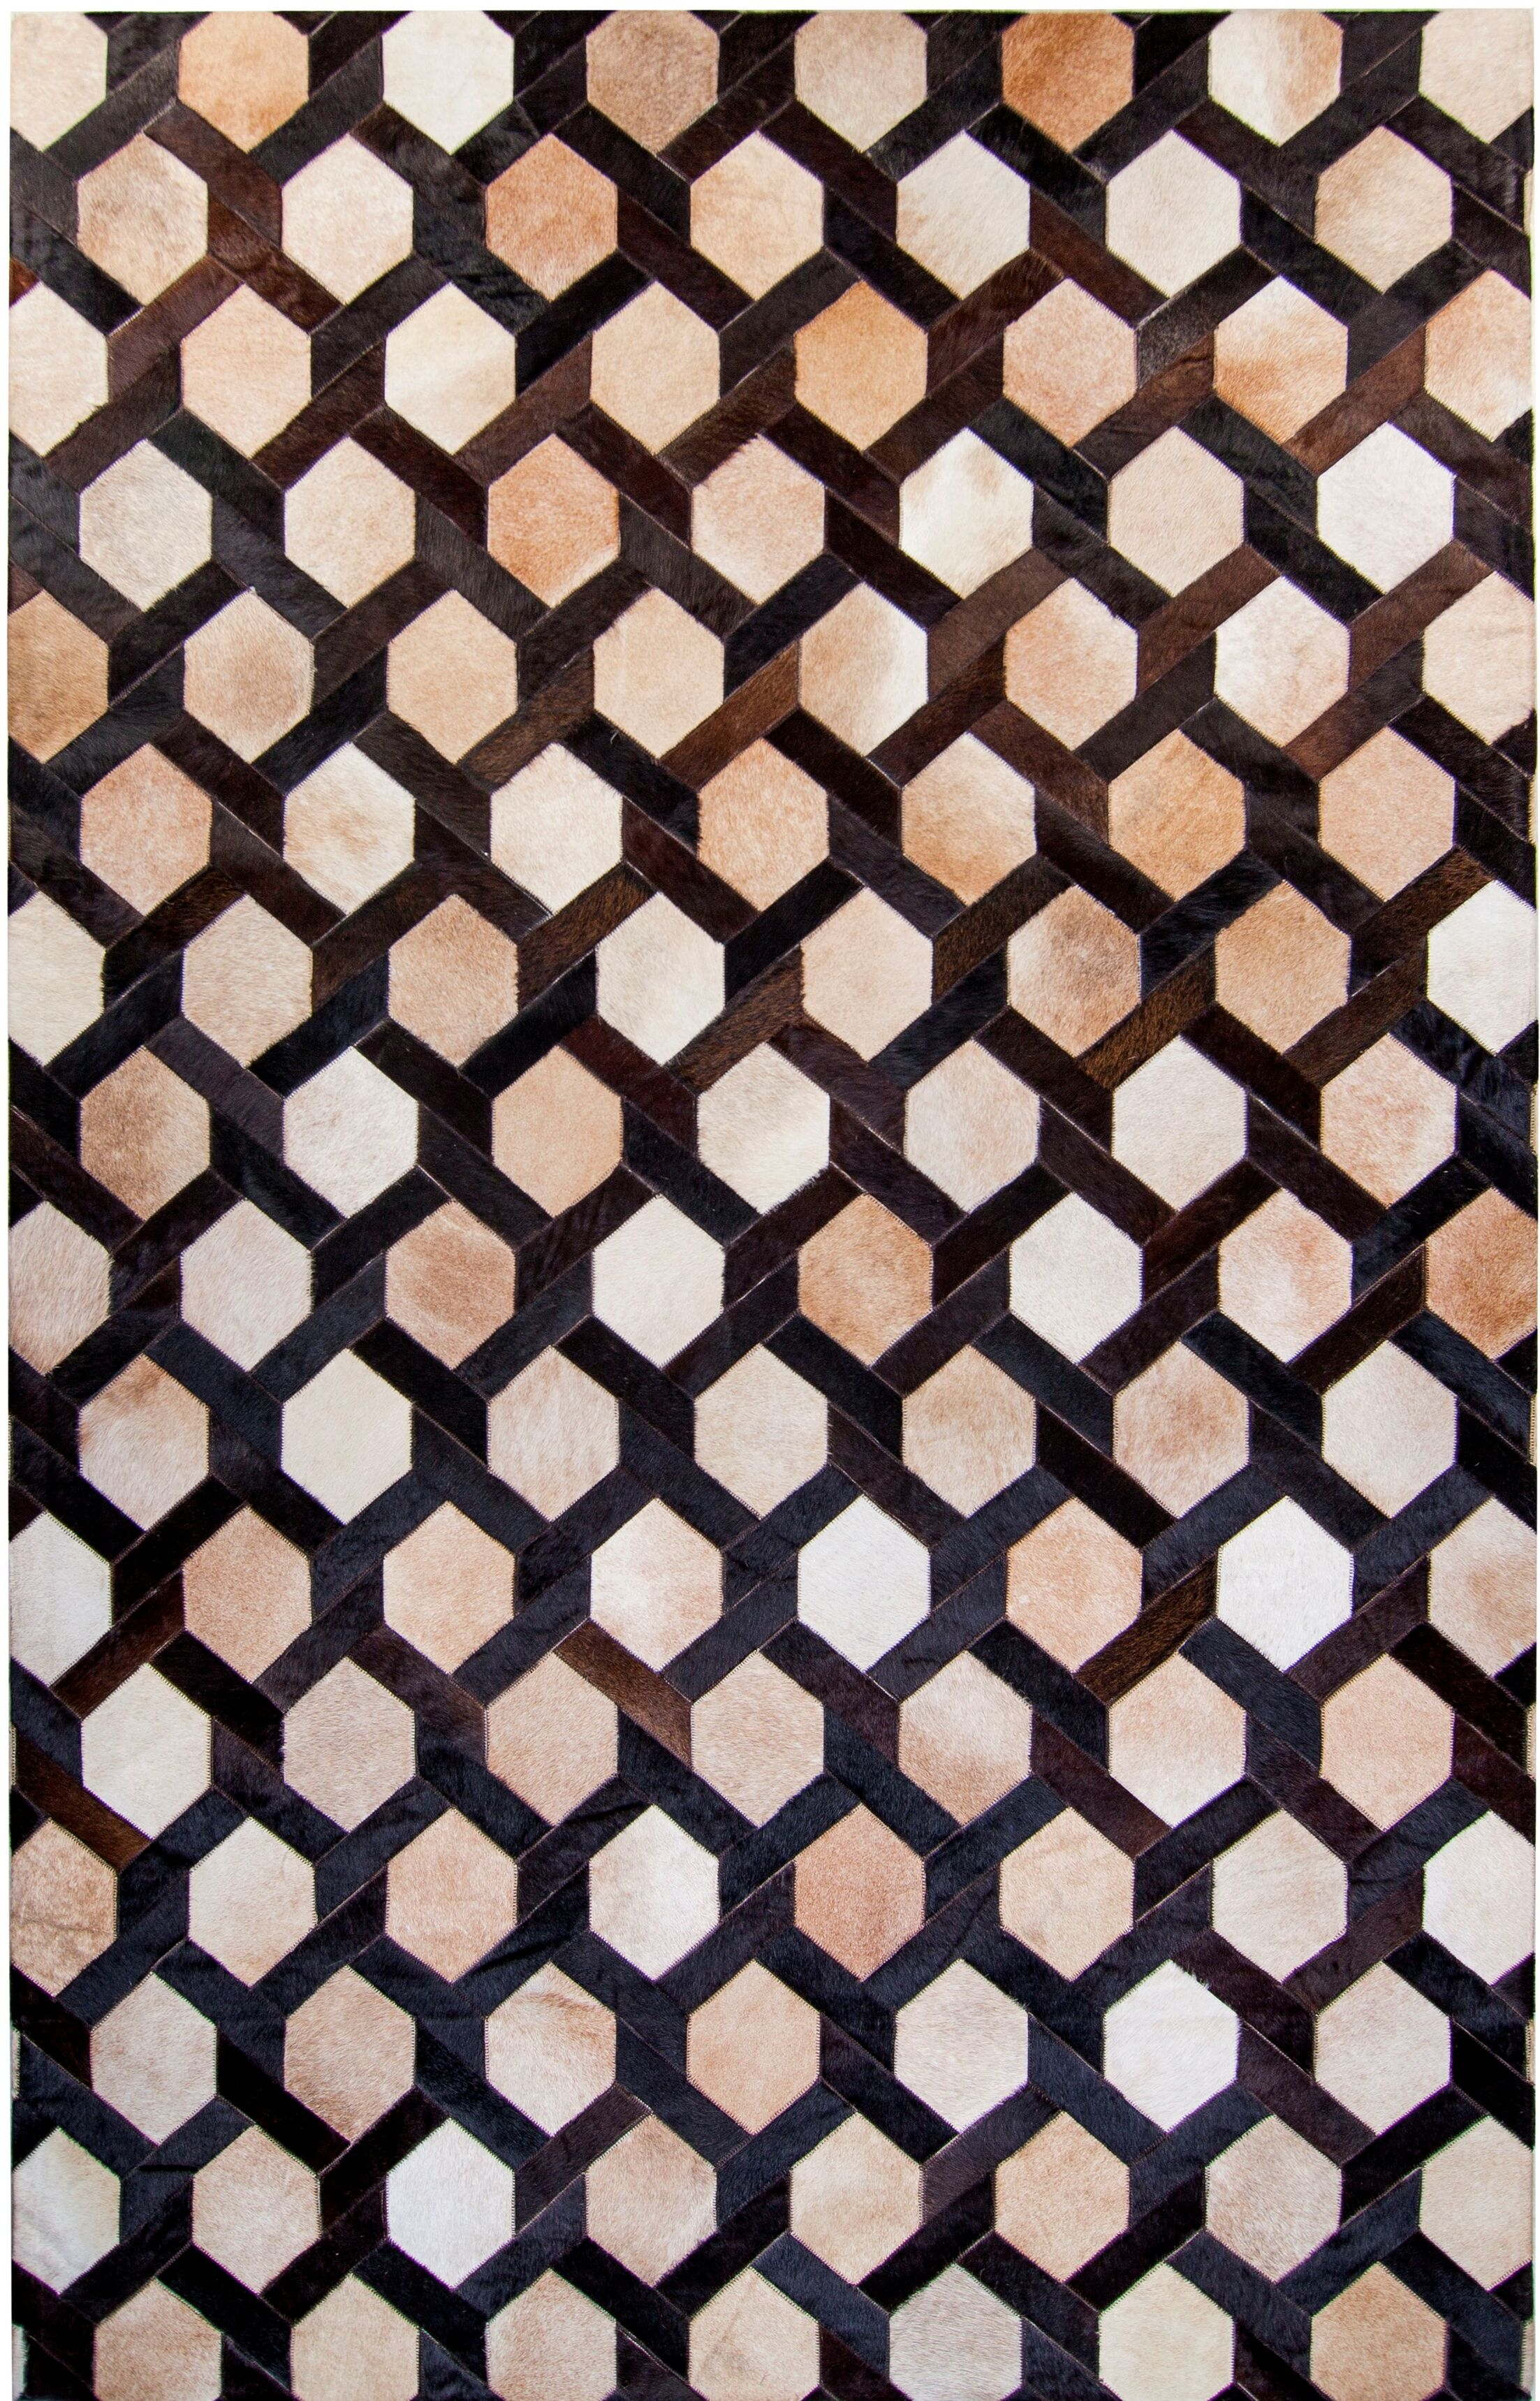 One-of-a-Kind Houghton Hand-Woven Cowhide Brown/Beige Area Rug Rug Size: Rectangle 5' x 8'